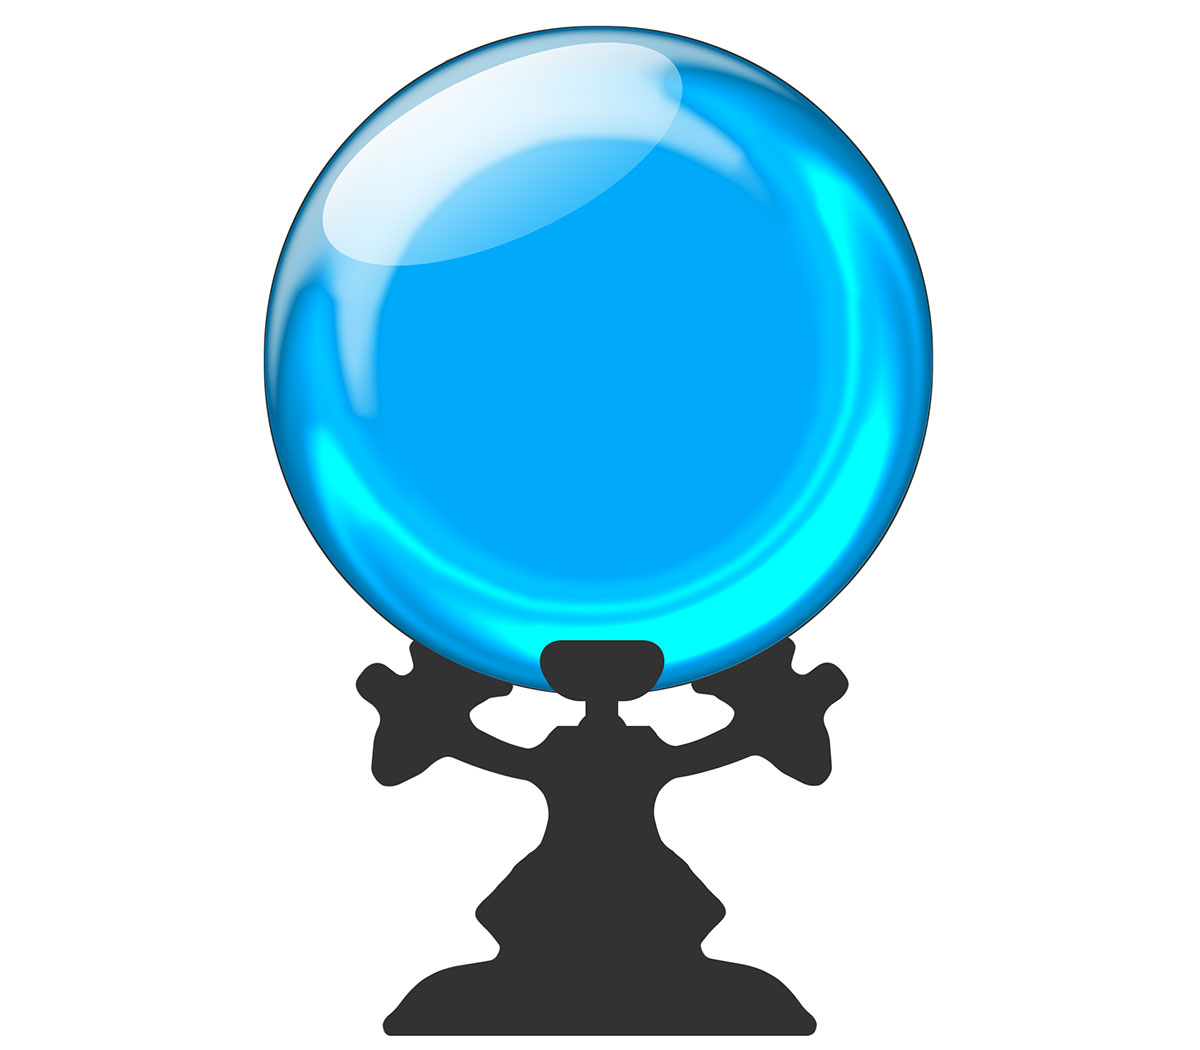 The online crystal ball